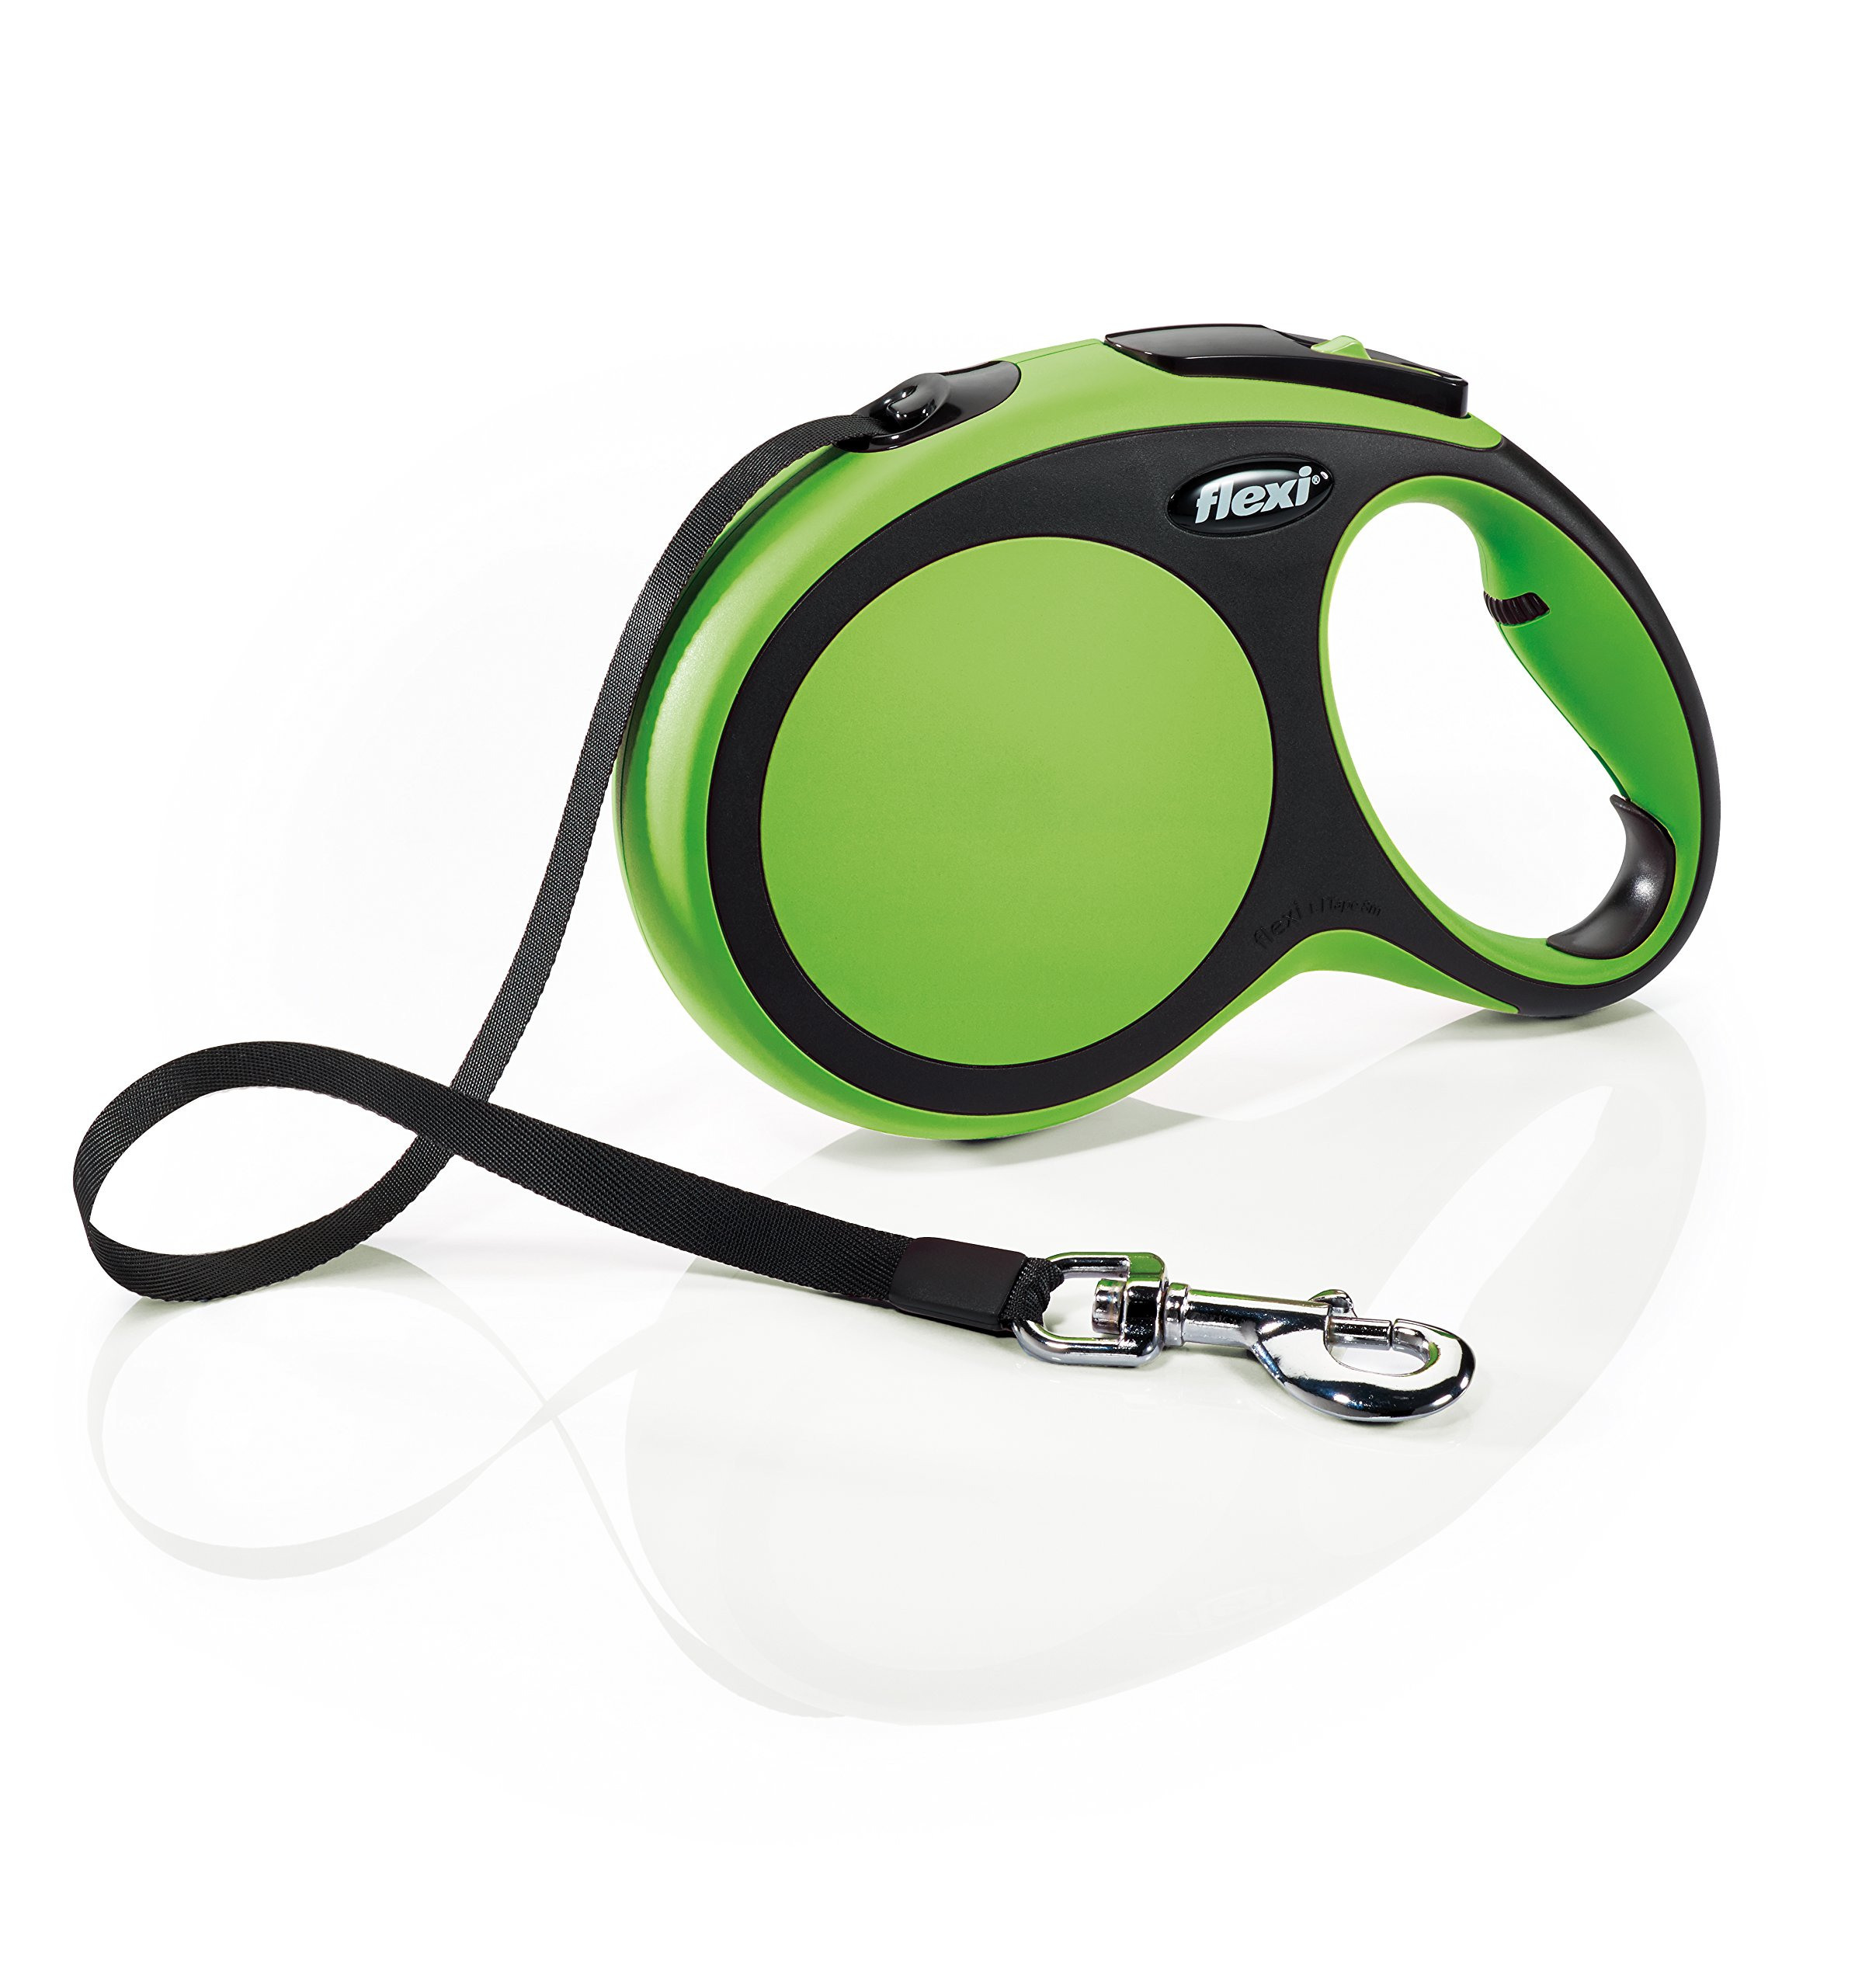 Flexi New Comfort Retractable Dog Leash (Tape), 26 ft, Large, Green by Flexi